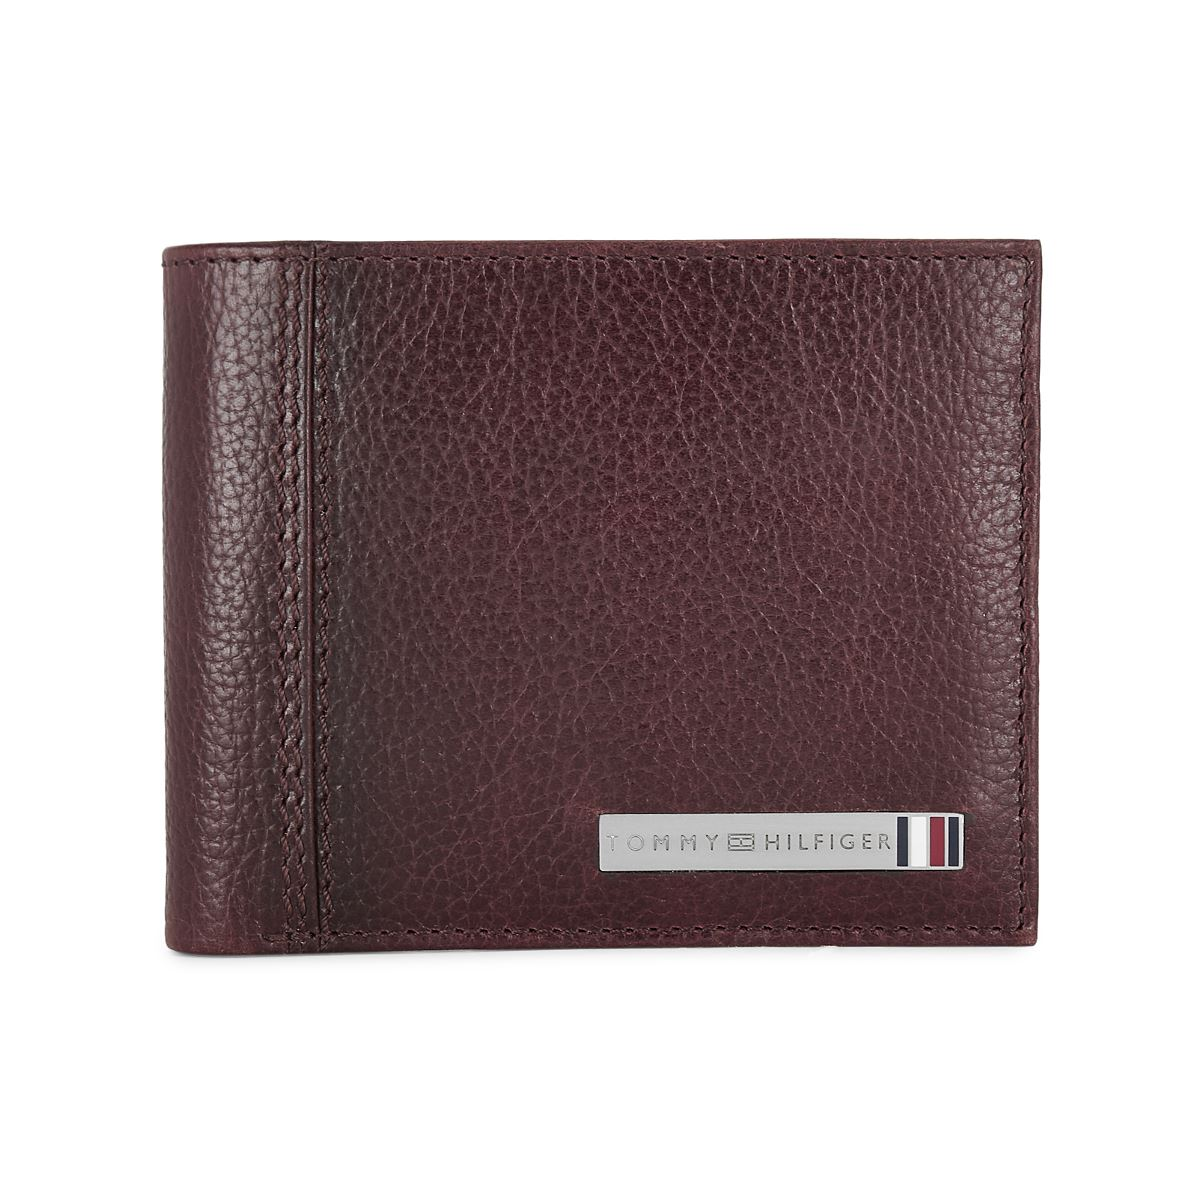 Tommy Hilfiger Leather Mens Textured Wine Tropical Global Coin Wallet